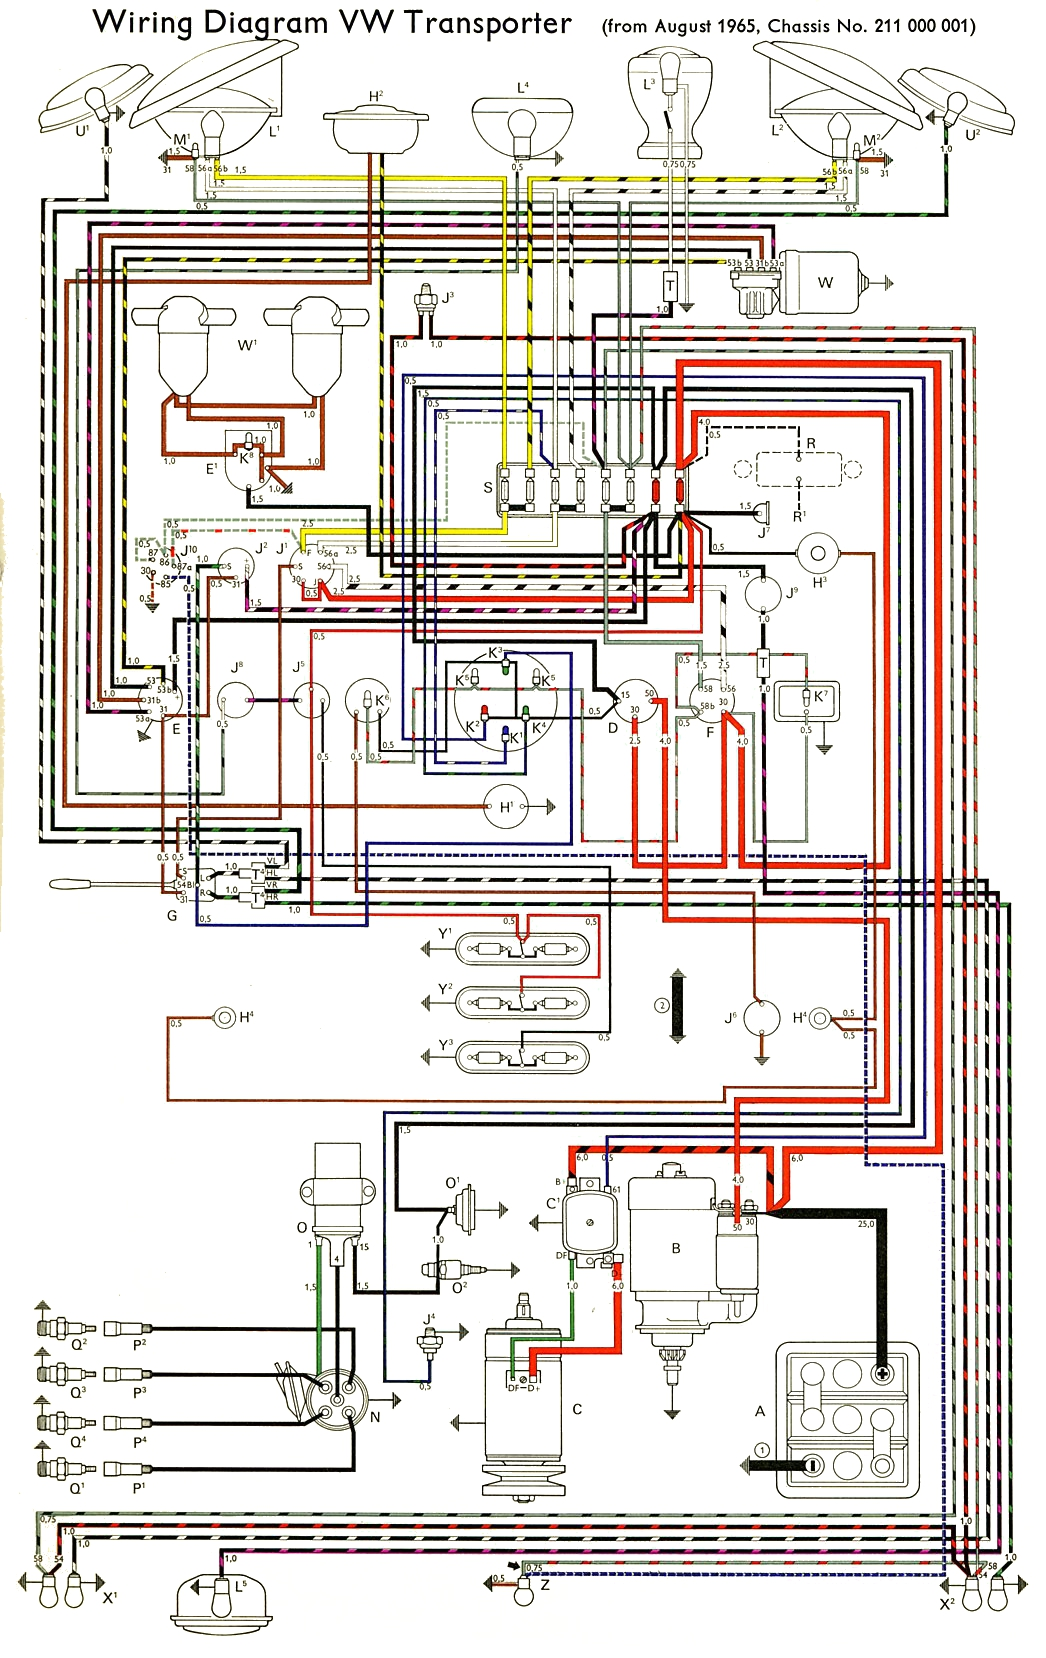 bus_66 electrical wiring diagrams beetle 1971 electrical wiring 1971 vw beetle wiring diagram at aneh.co